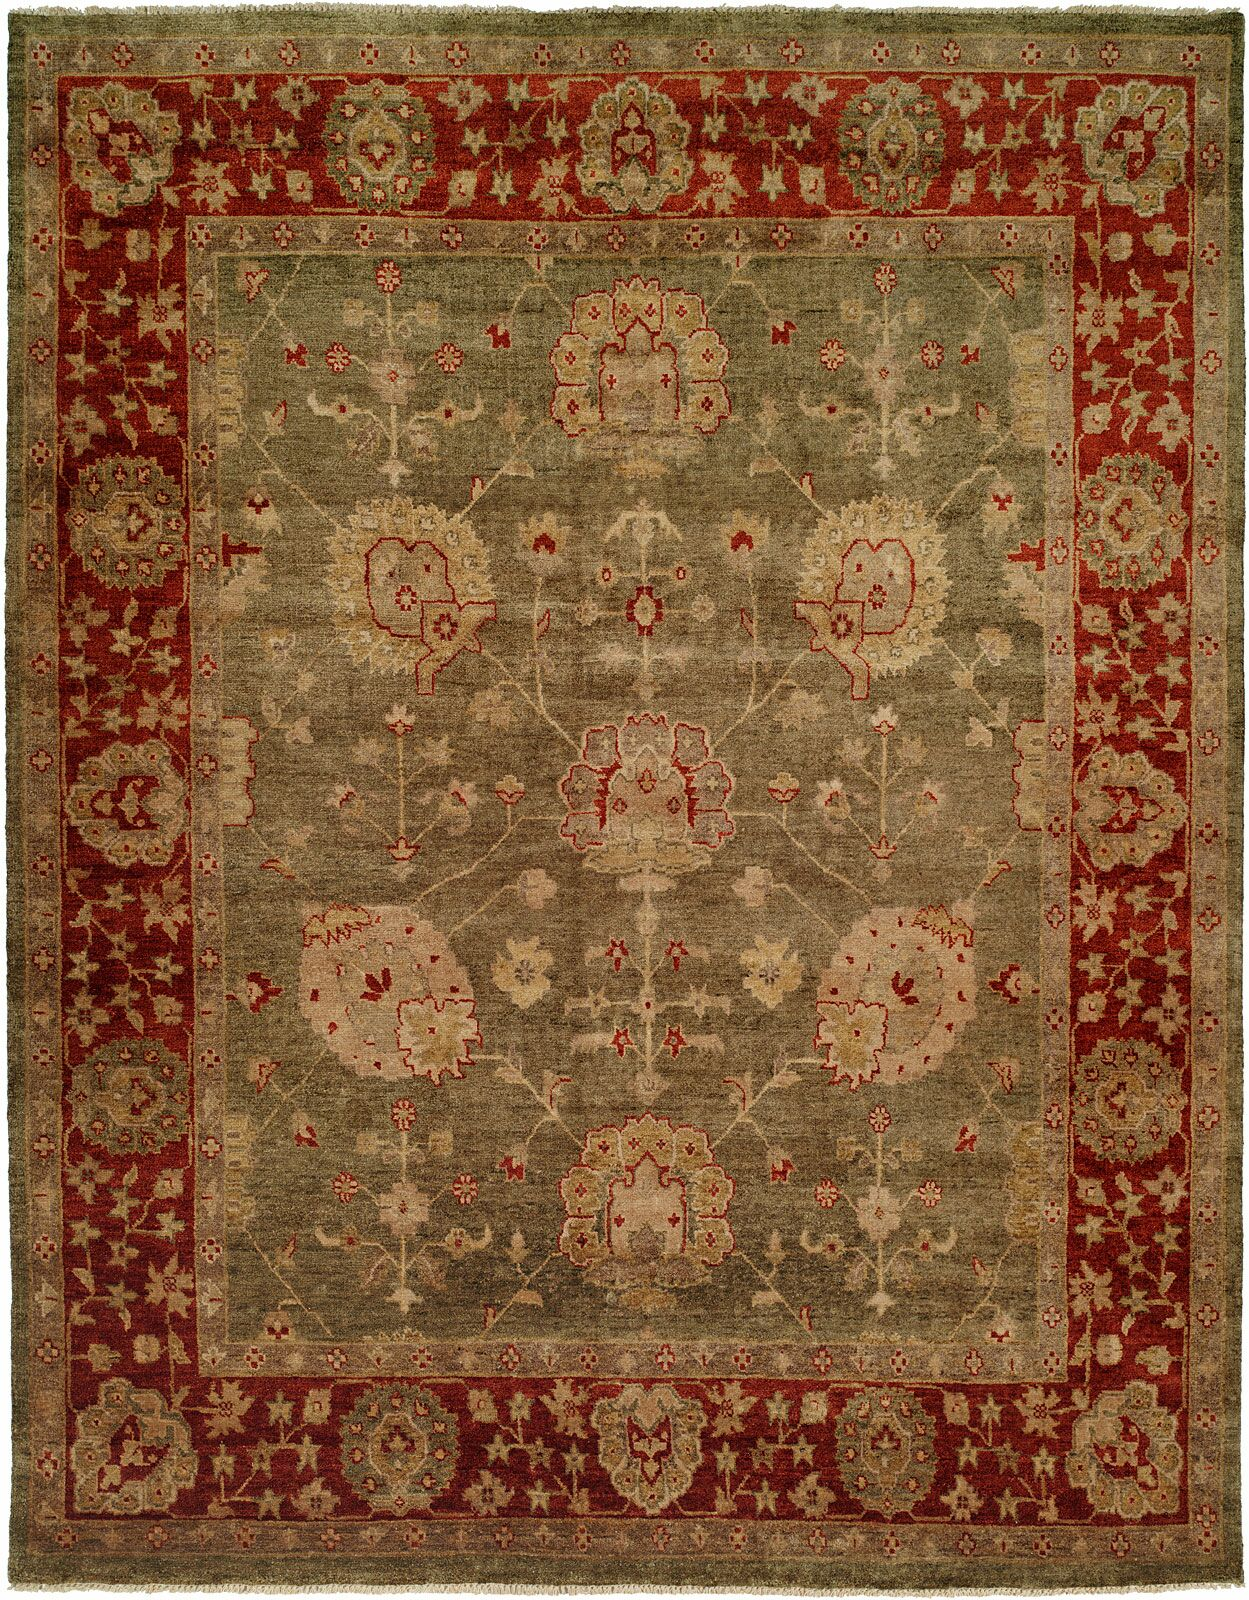 Davao Hand-Knotted Green/Red Area Rug Rug Size: Rectangle 9' x 12'